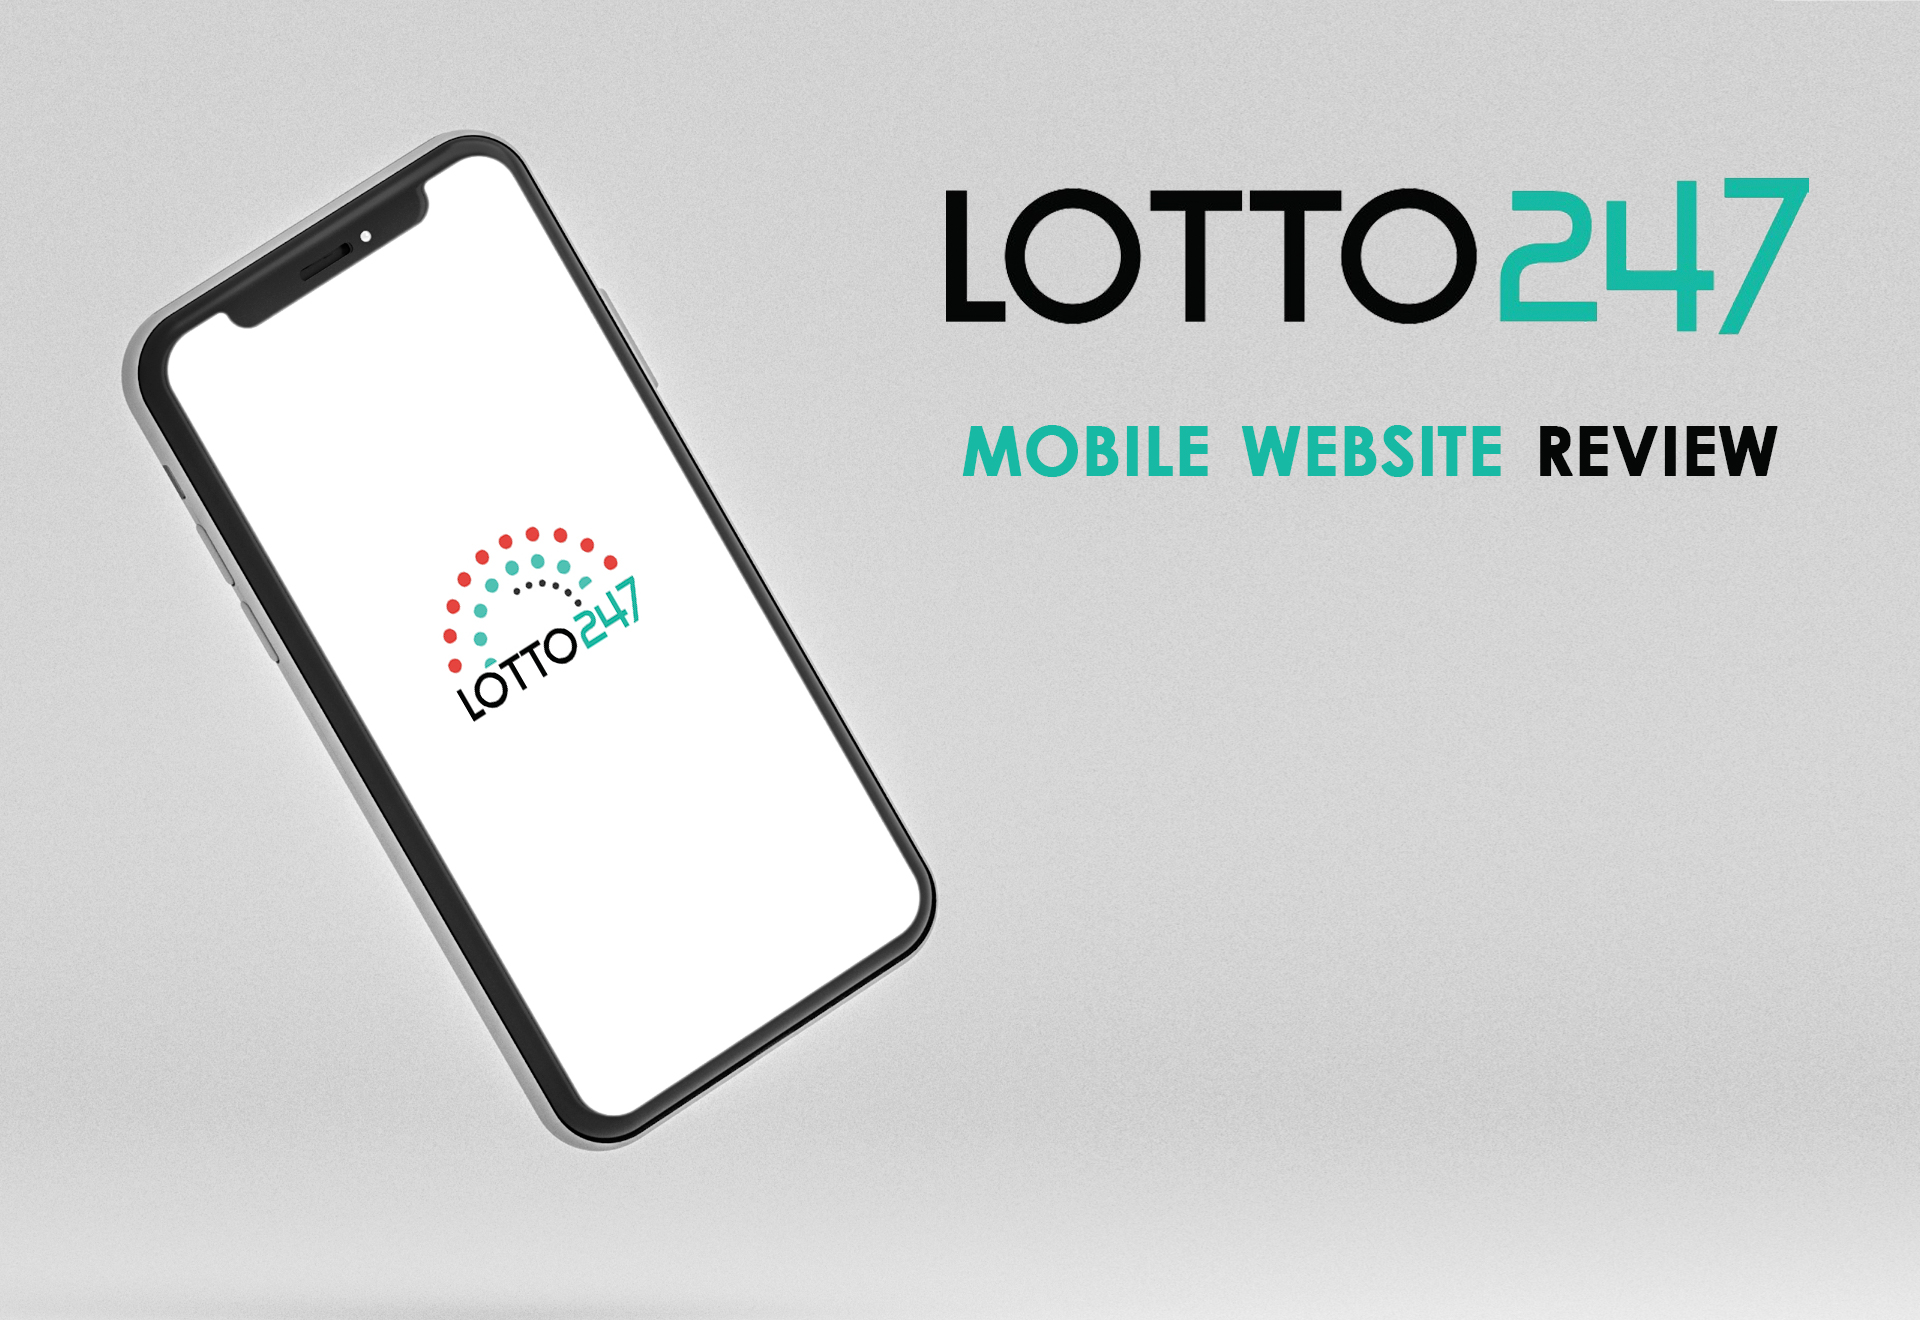 You can buy tickets at the mobile site of Lotto247 as well.